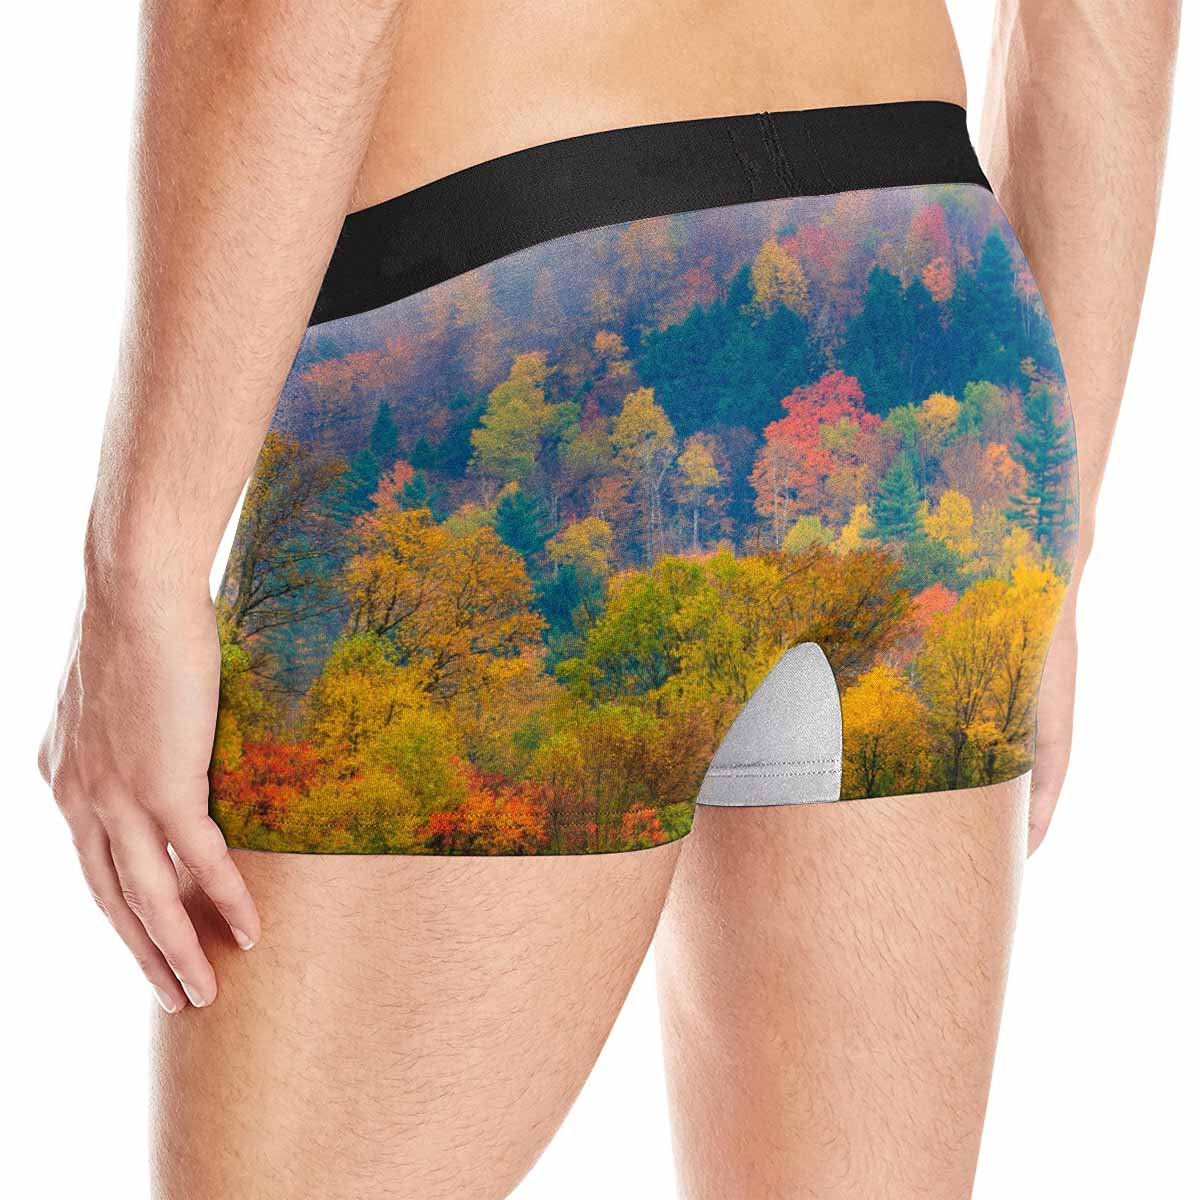 USA XS-3XL Stowe Vermont INTERESTPRINT Mens Boxer Briefs Underwear Field of Trees During Fall Foliage